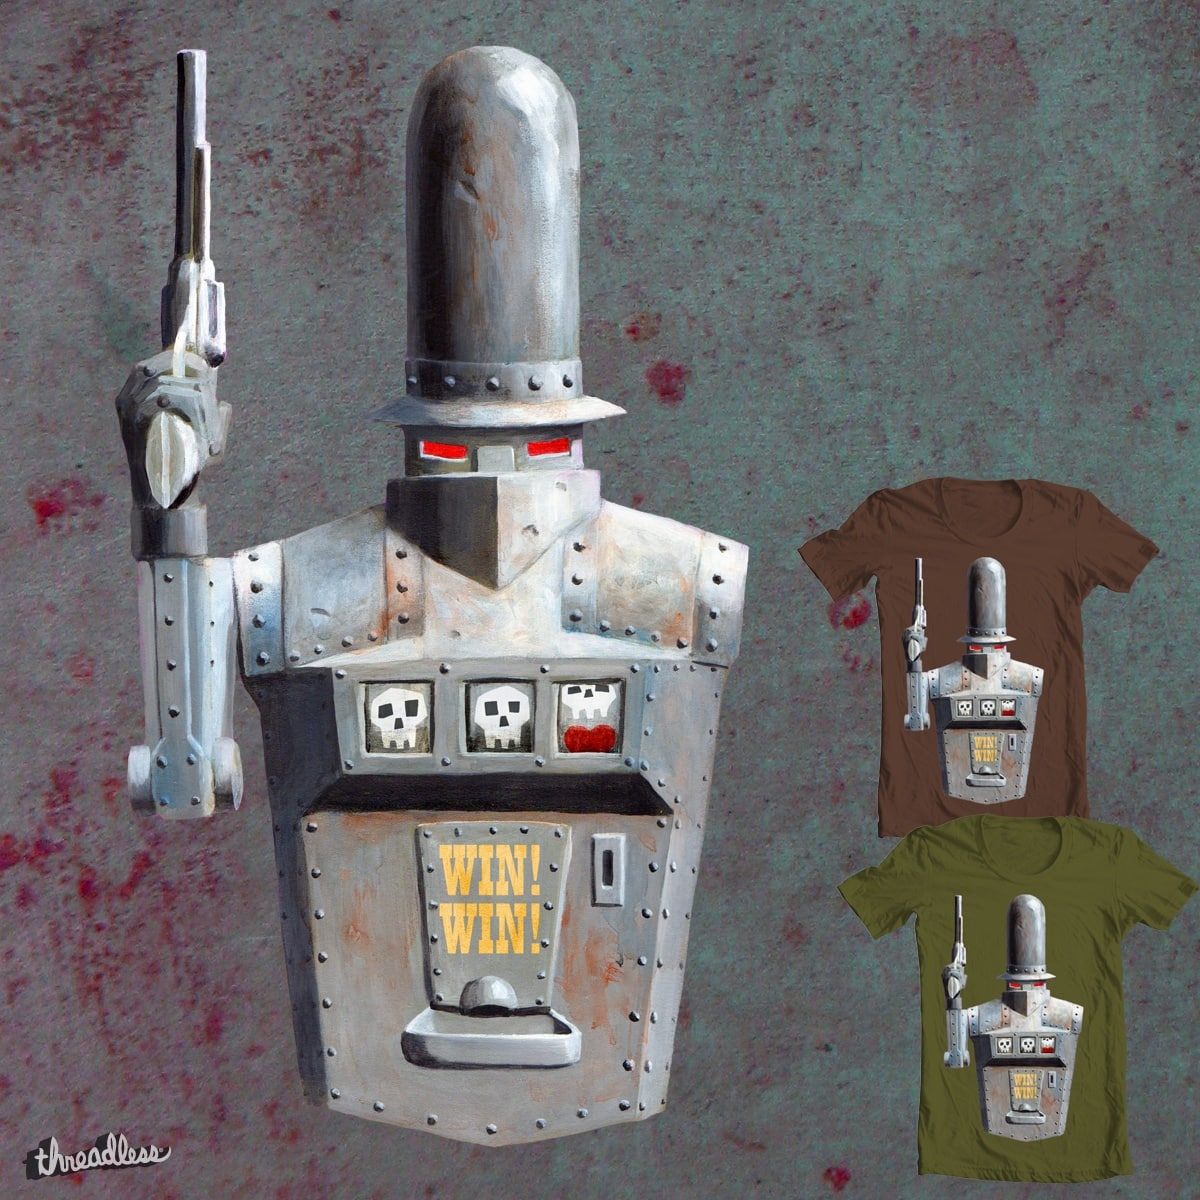 One-armed Bandit by James Ortega on Threadless